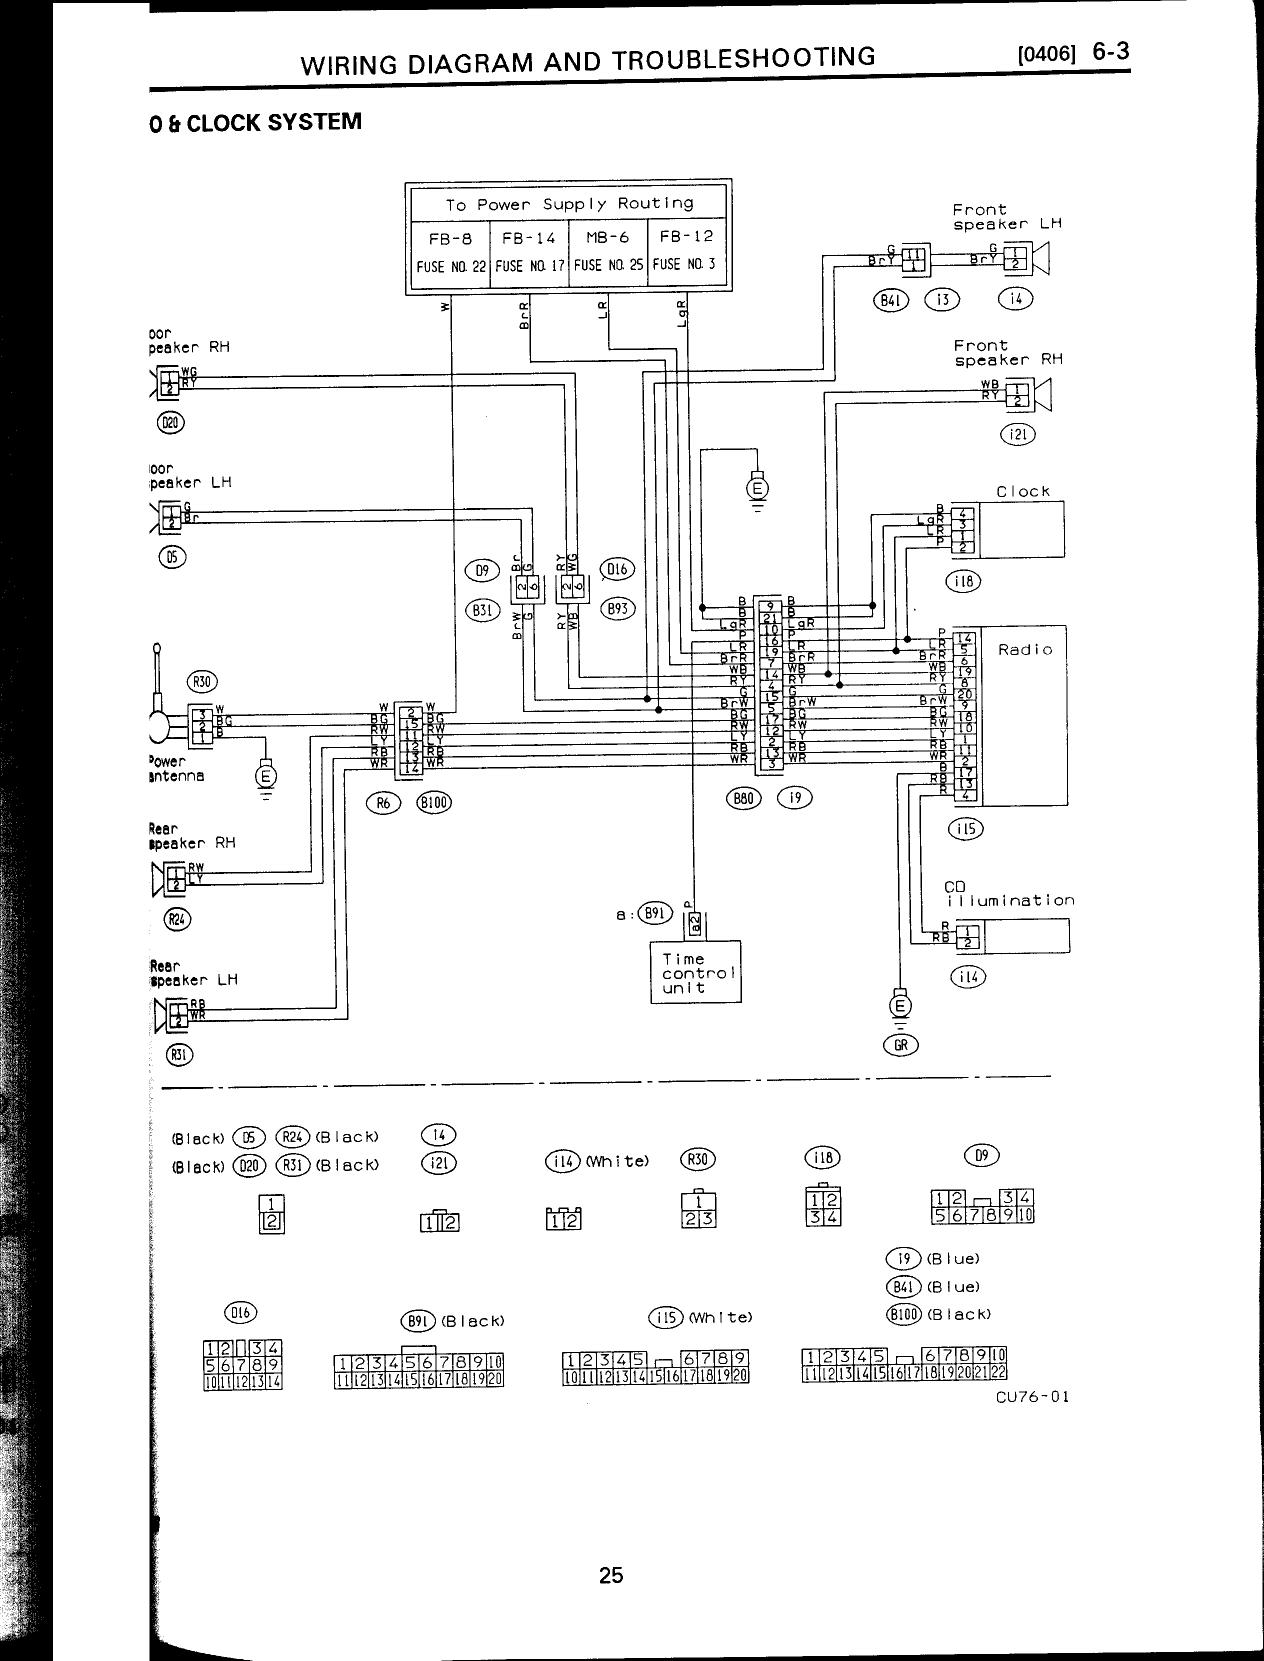 5915 subaru svx wiring harness - wiring diagram general helper | wiring  library  wiring library